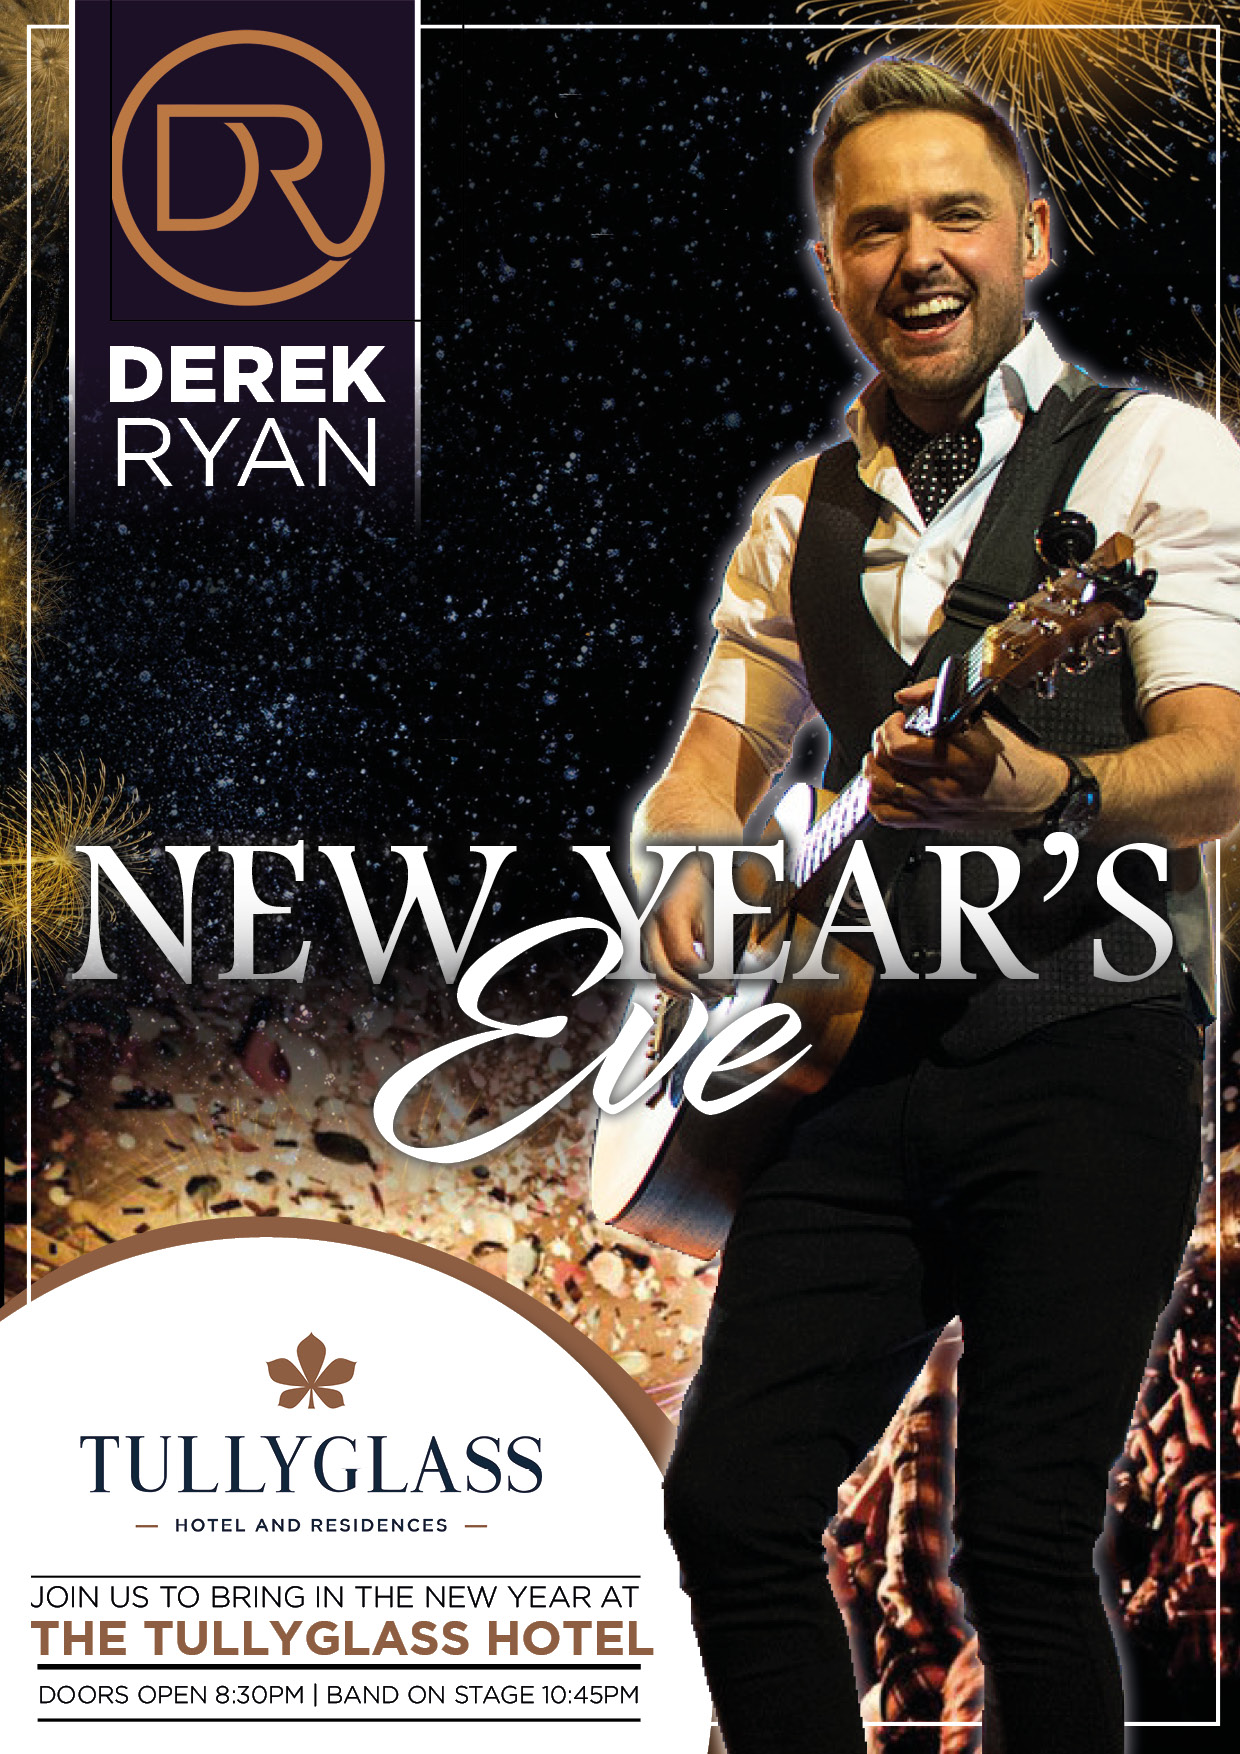 New years Eve with Derek - Tullyglass Hotel and Residences